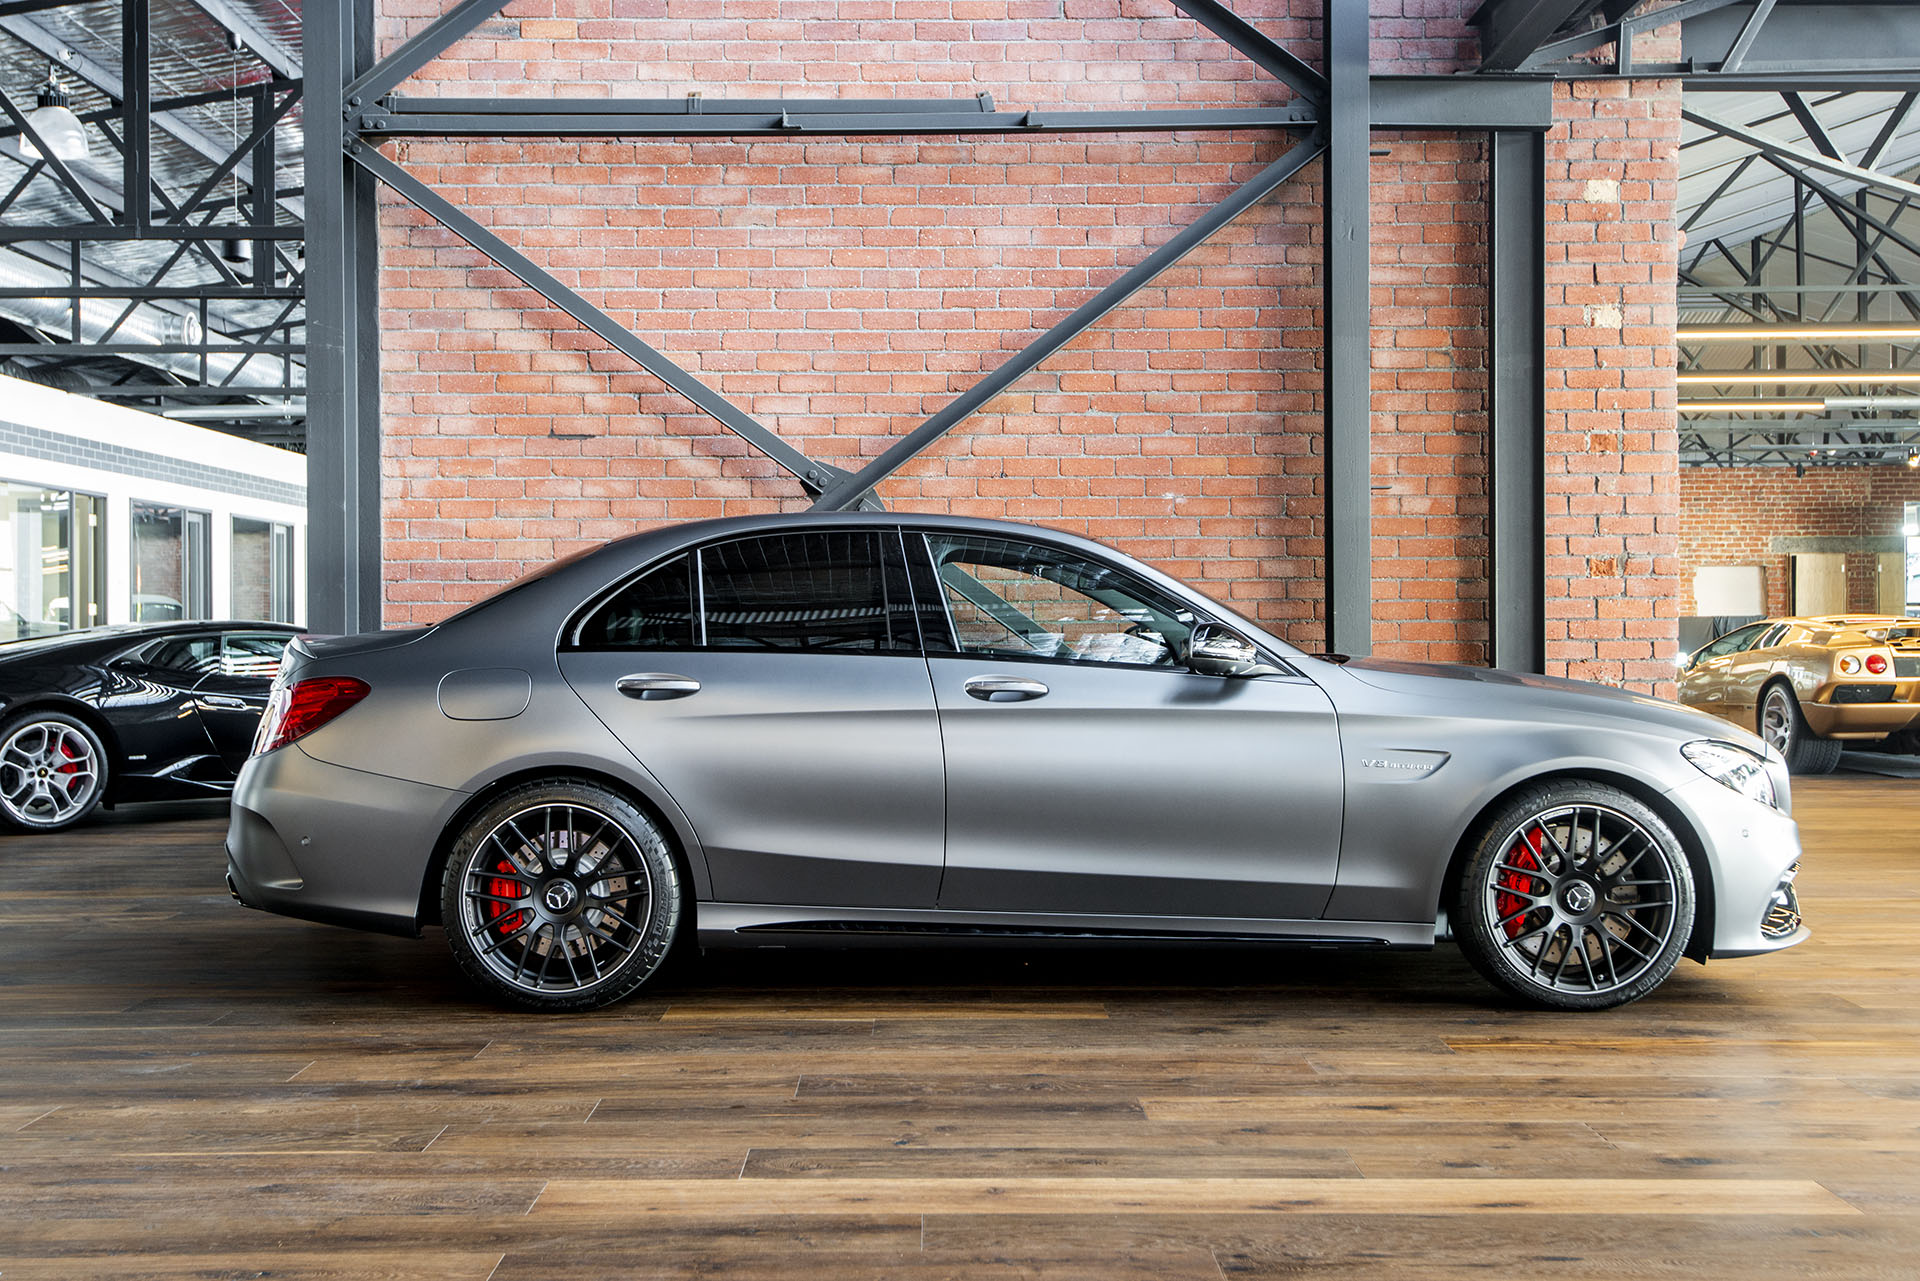 2017 Mercedes C63s Amg - Richmonds